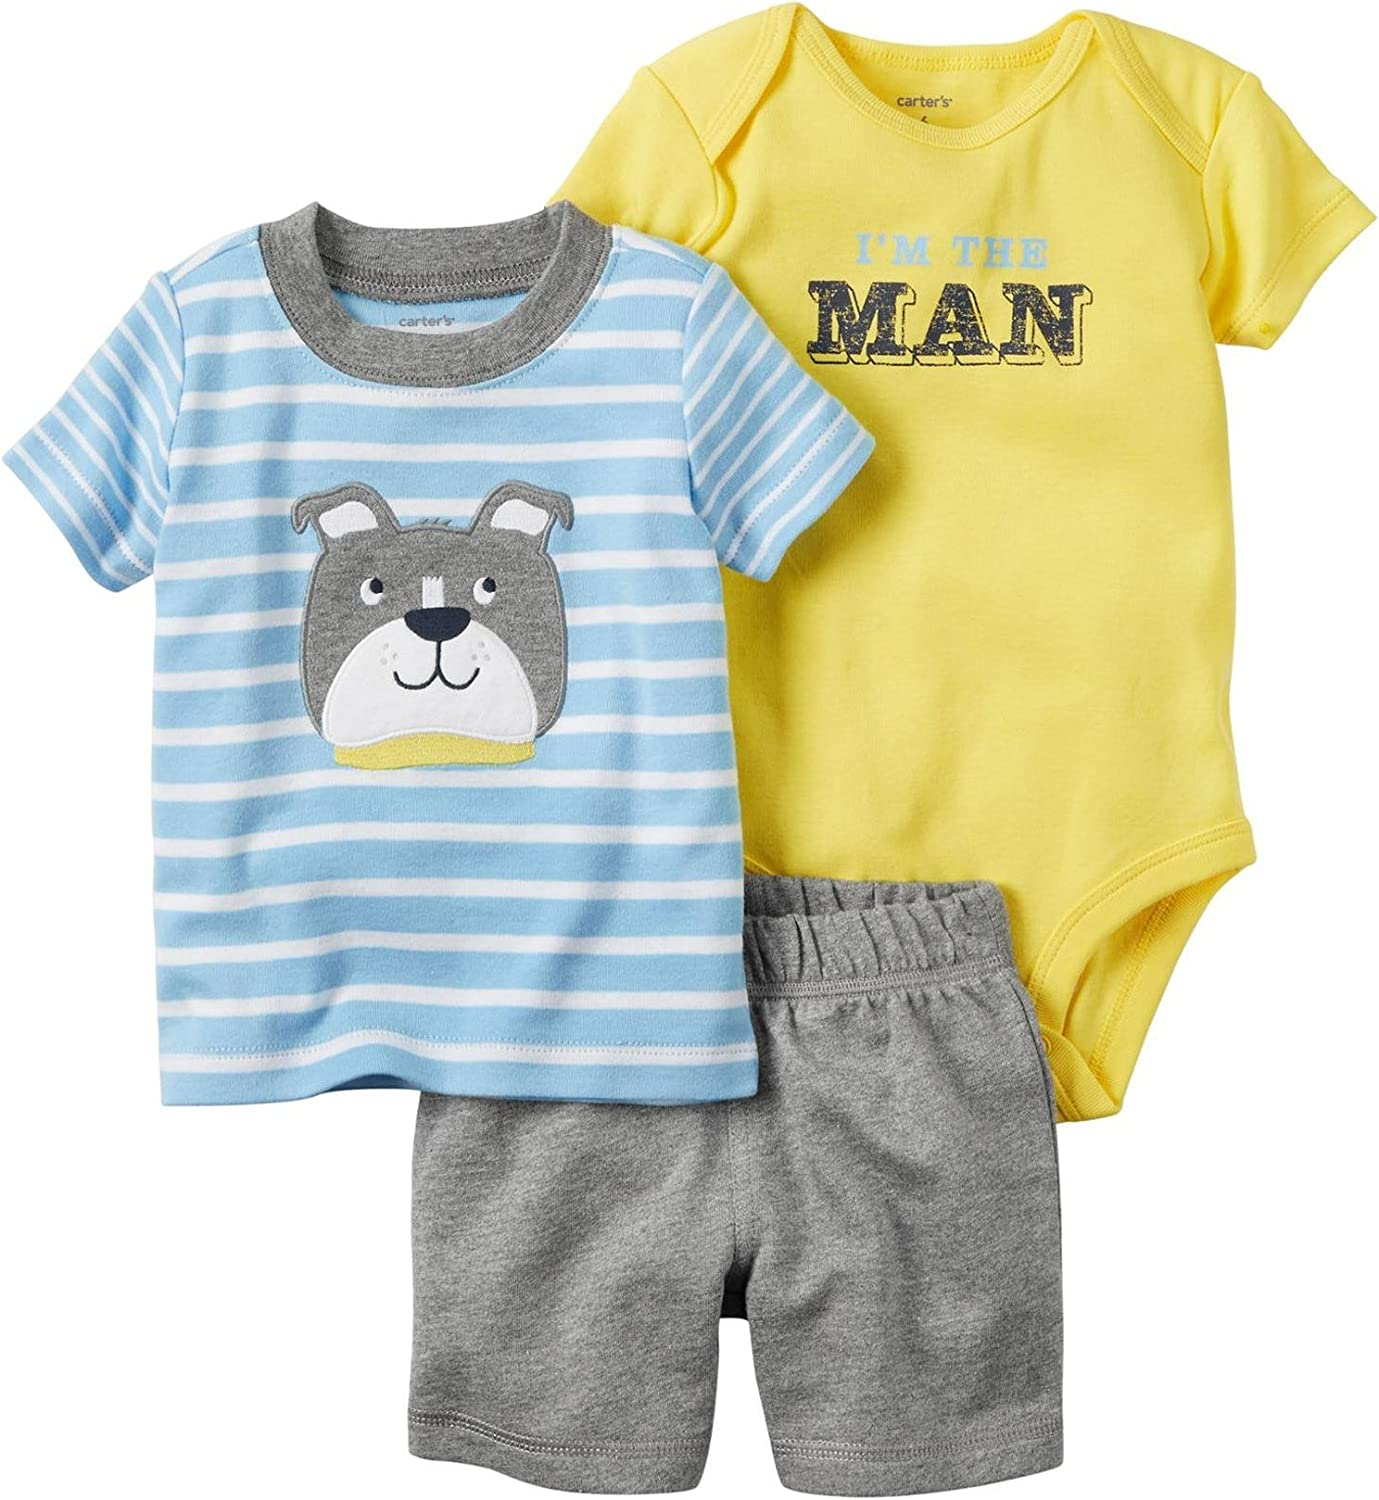 Carter's Baby Boys' Diaper Cover Sets